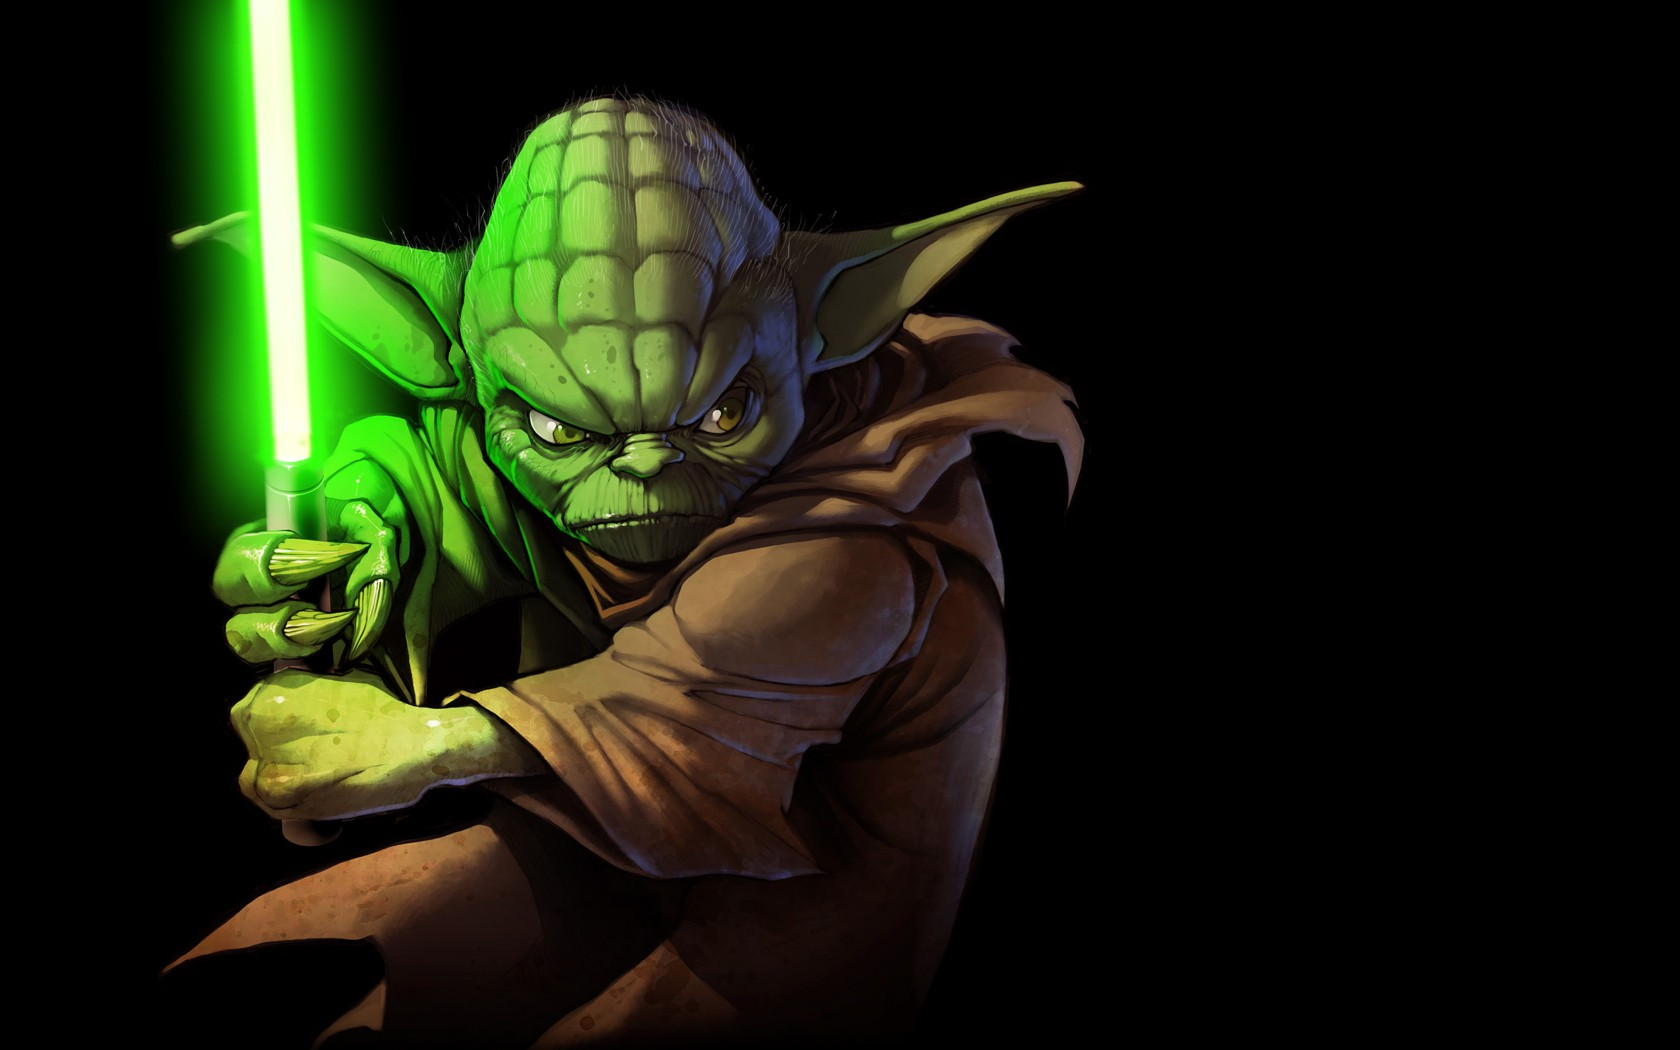 Hulk 3d Wallpaper Full Hd Yoda Star Wars Lightsaber Wallpapers Hd Desktop And